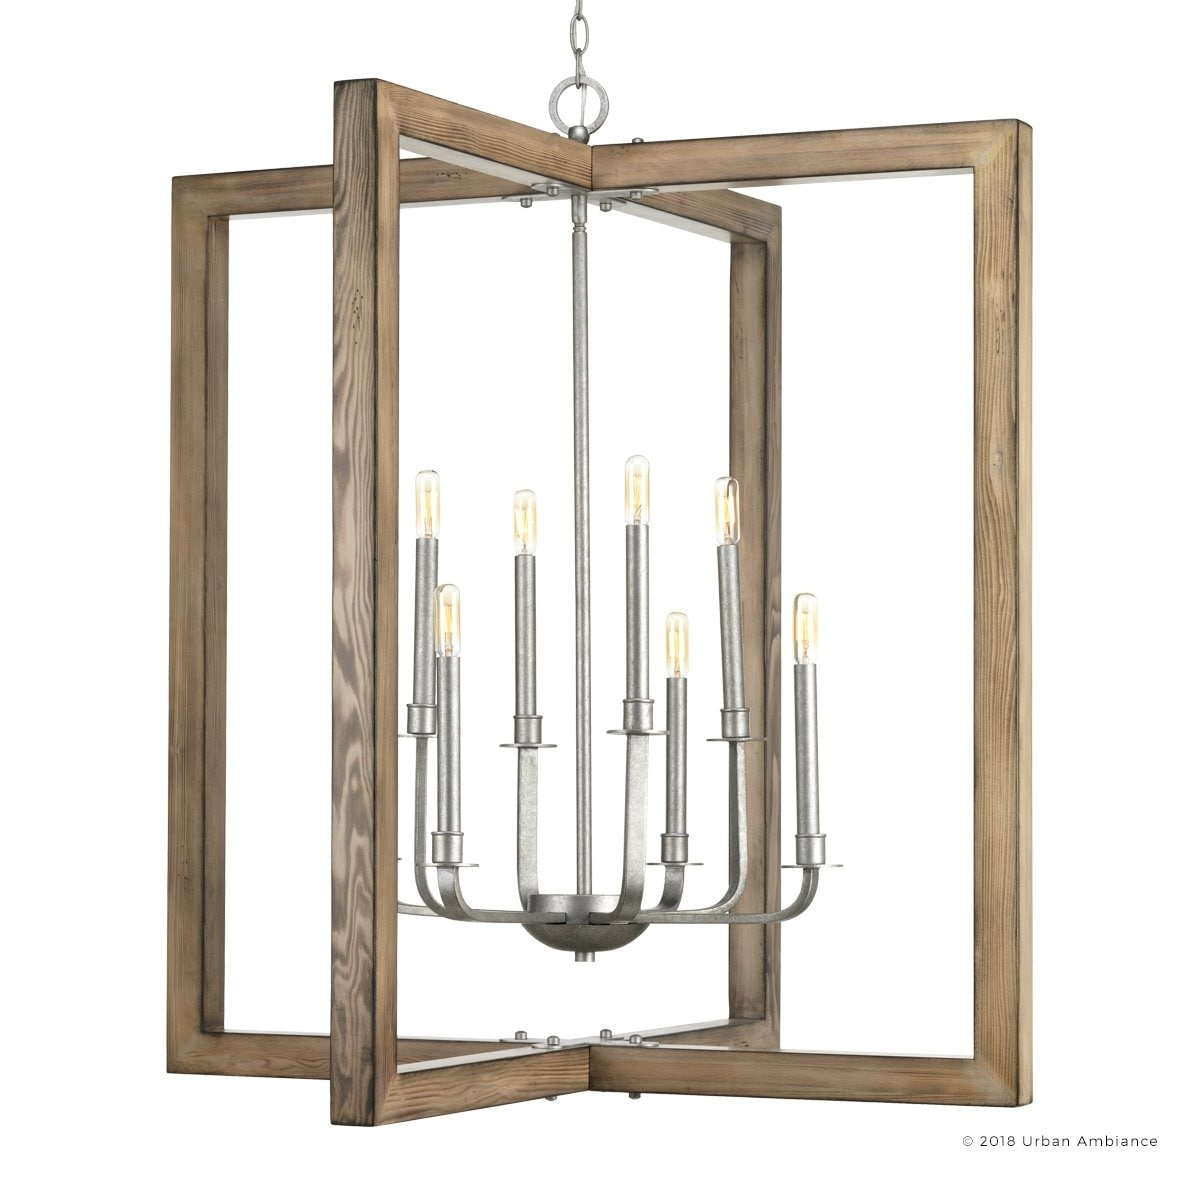 Shop luxury modern farmhouse chandelier 39h x 36w with rustic style galvanized steel finish by urban ambiance free shipping today overstock com